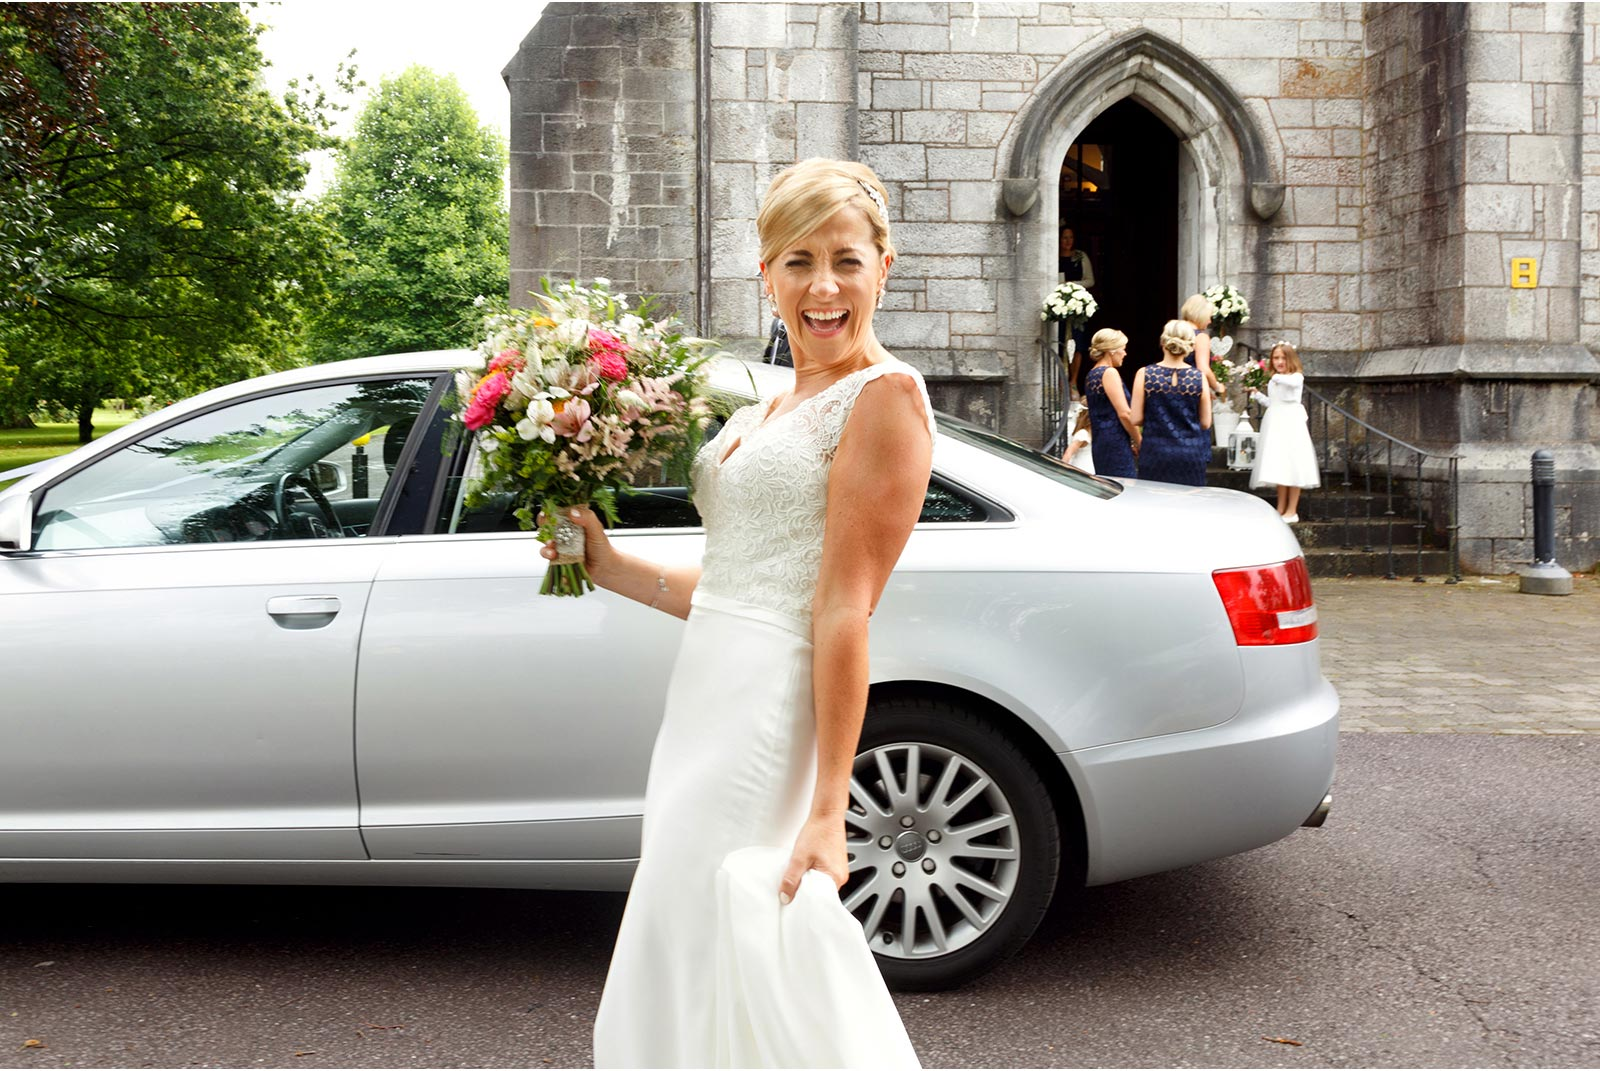 Arriving at UCC's Aula Maxima for her wedding, fun wedding photography, Cork